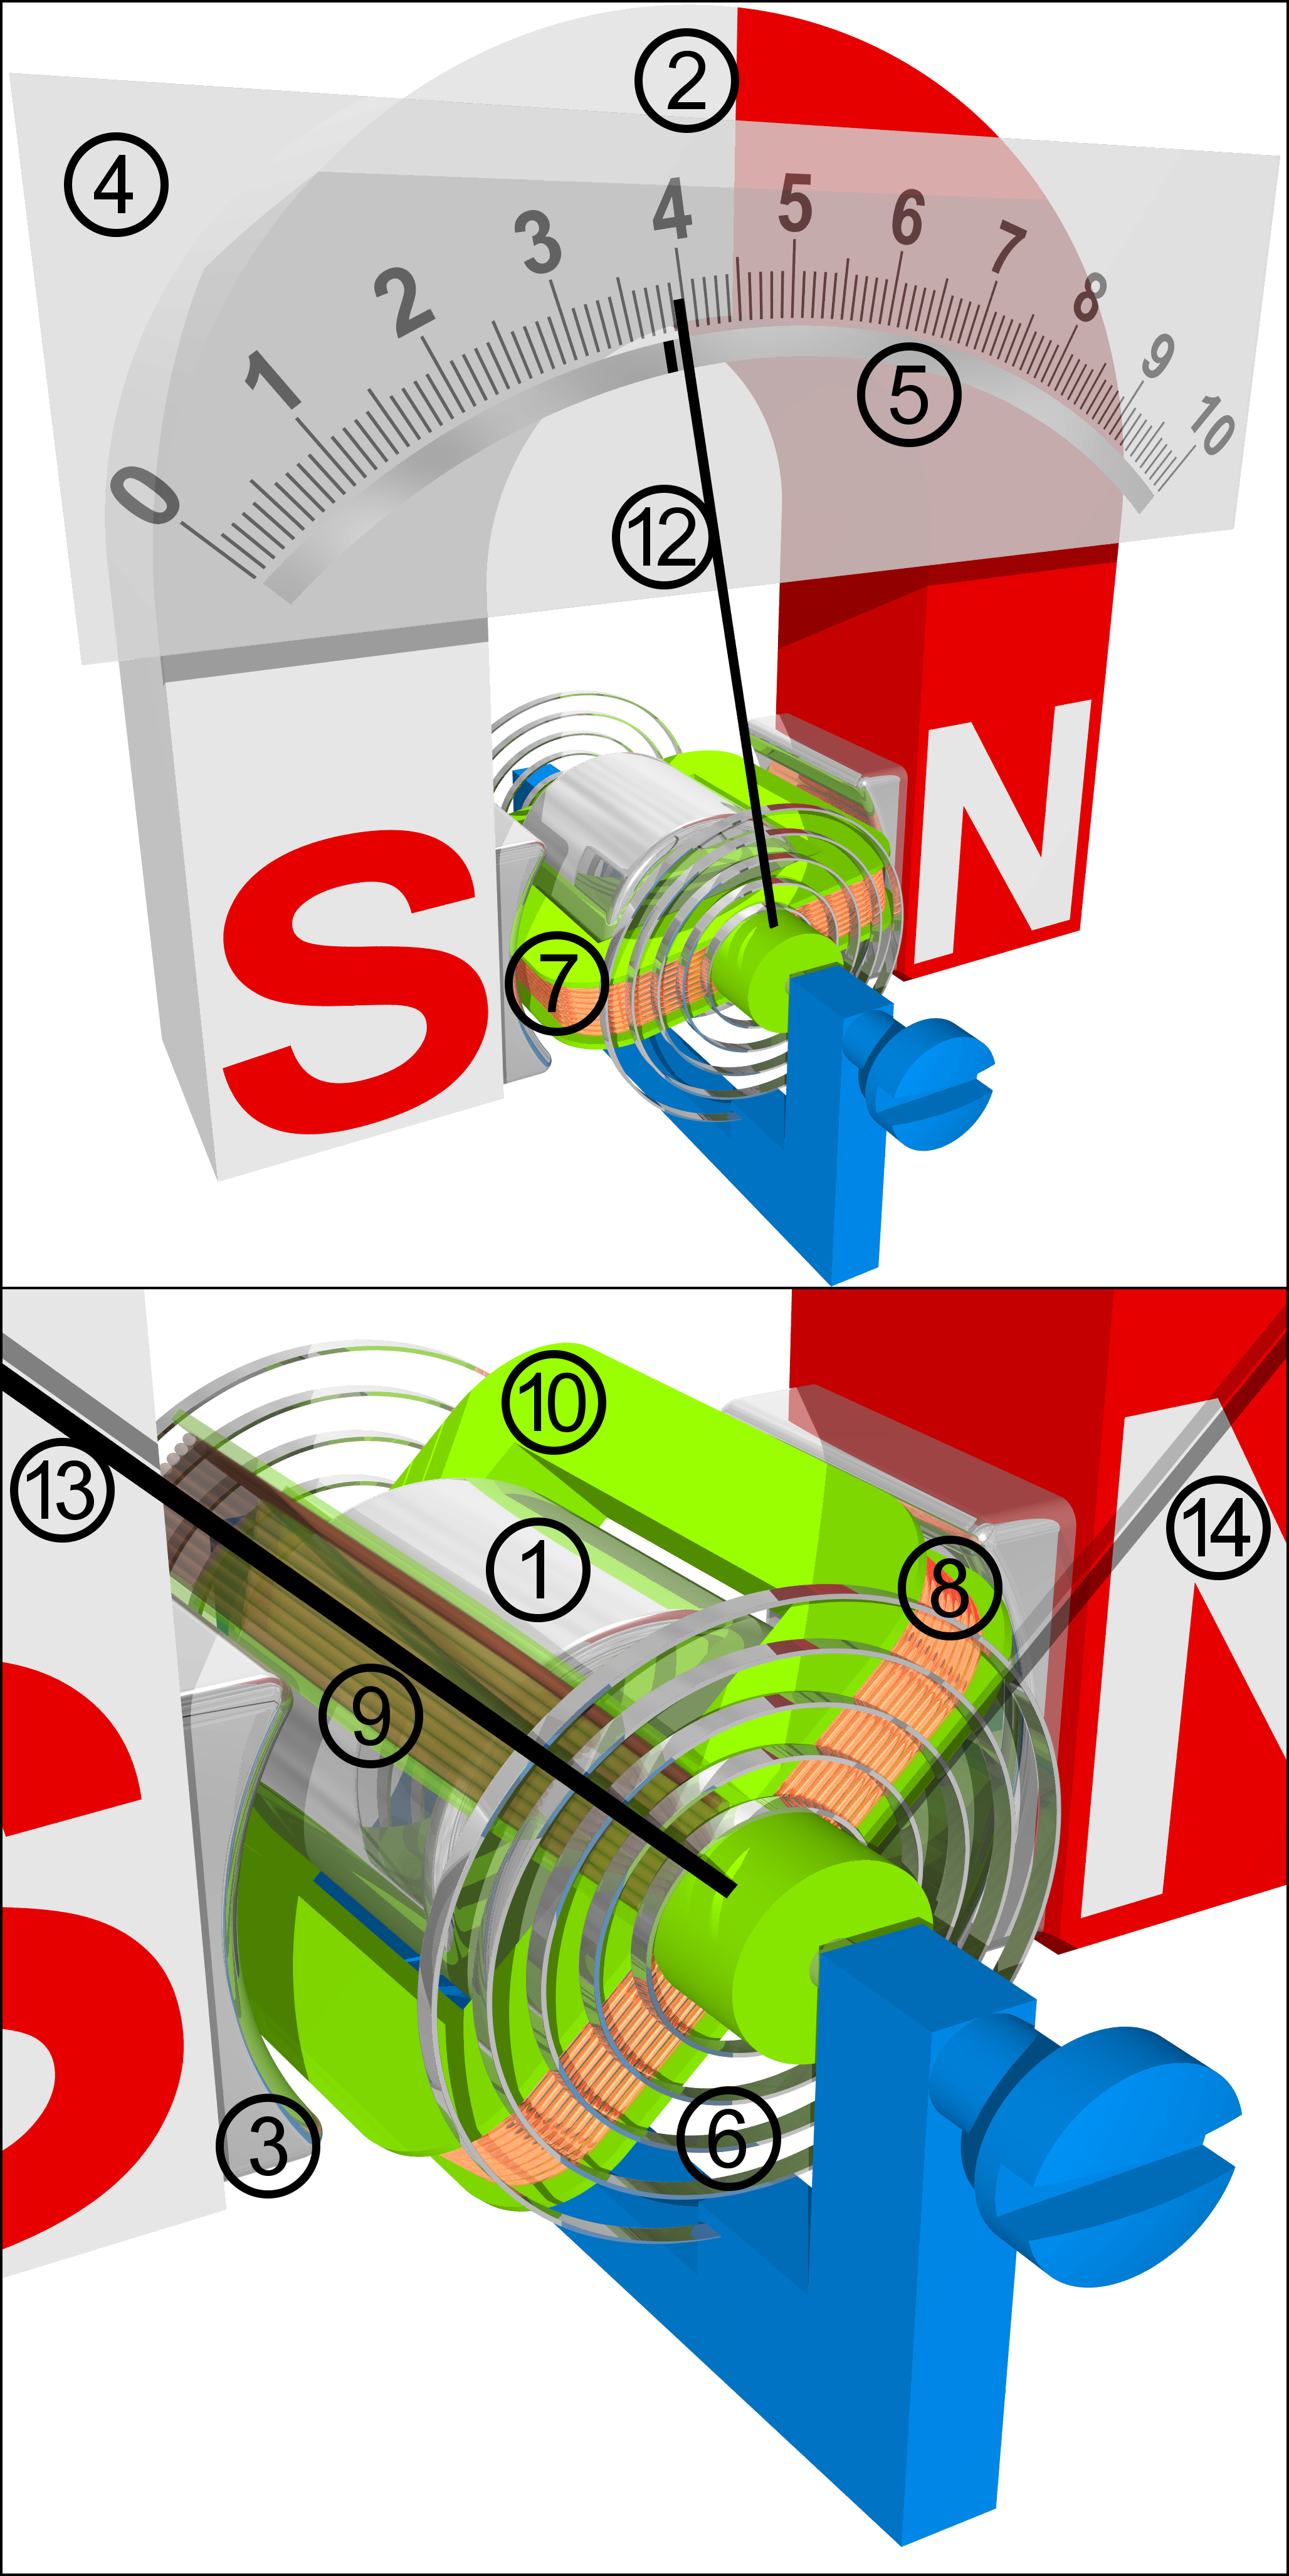 Moving_coil_instrument_principle.png